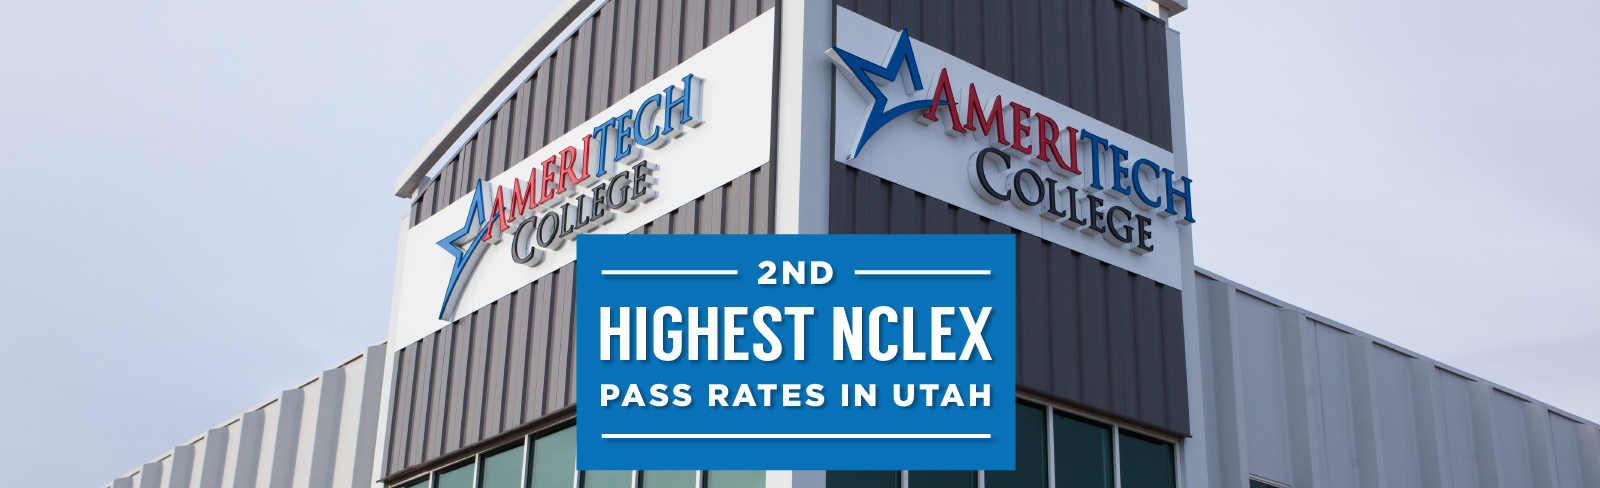 NCLEX Pass Rates at Ameritech